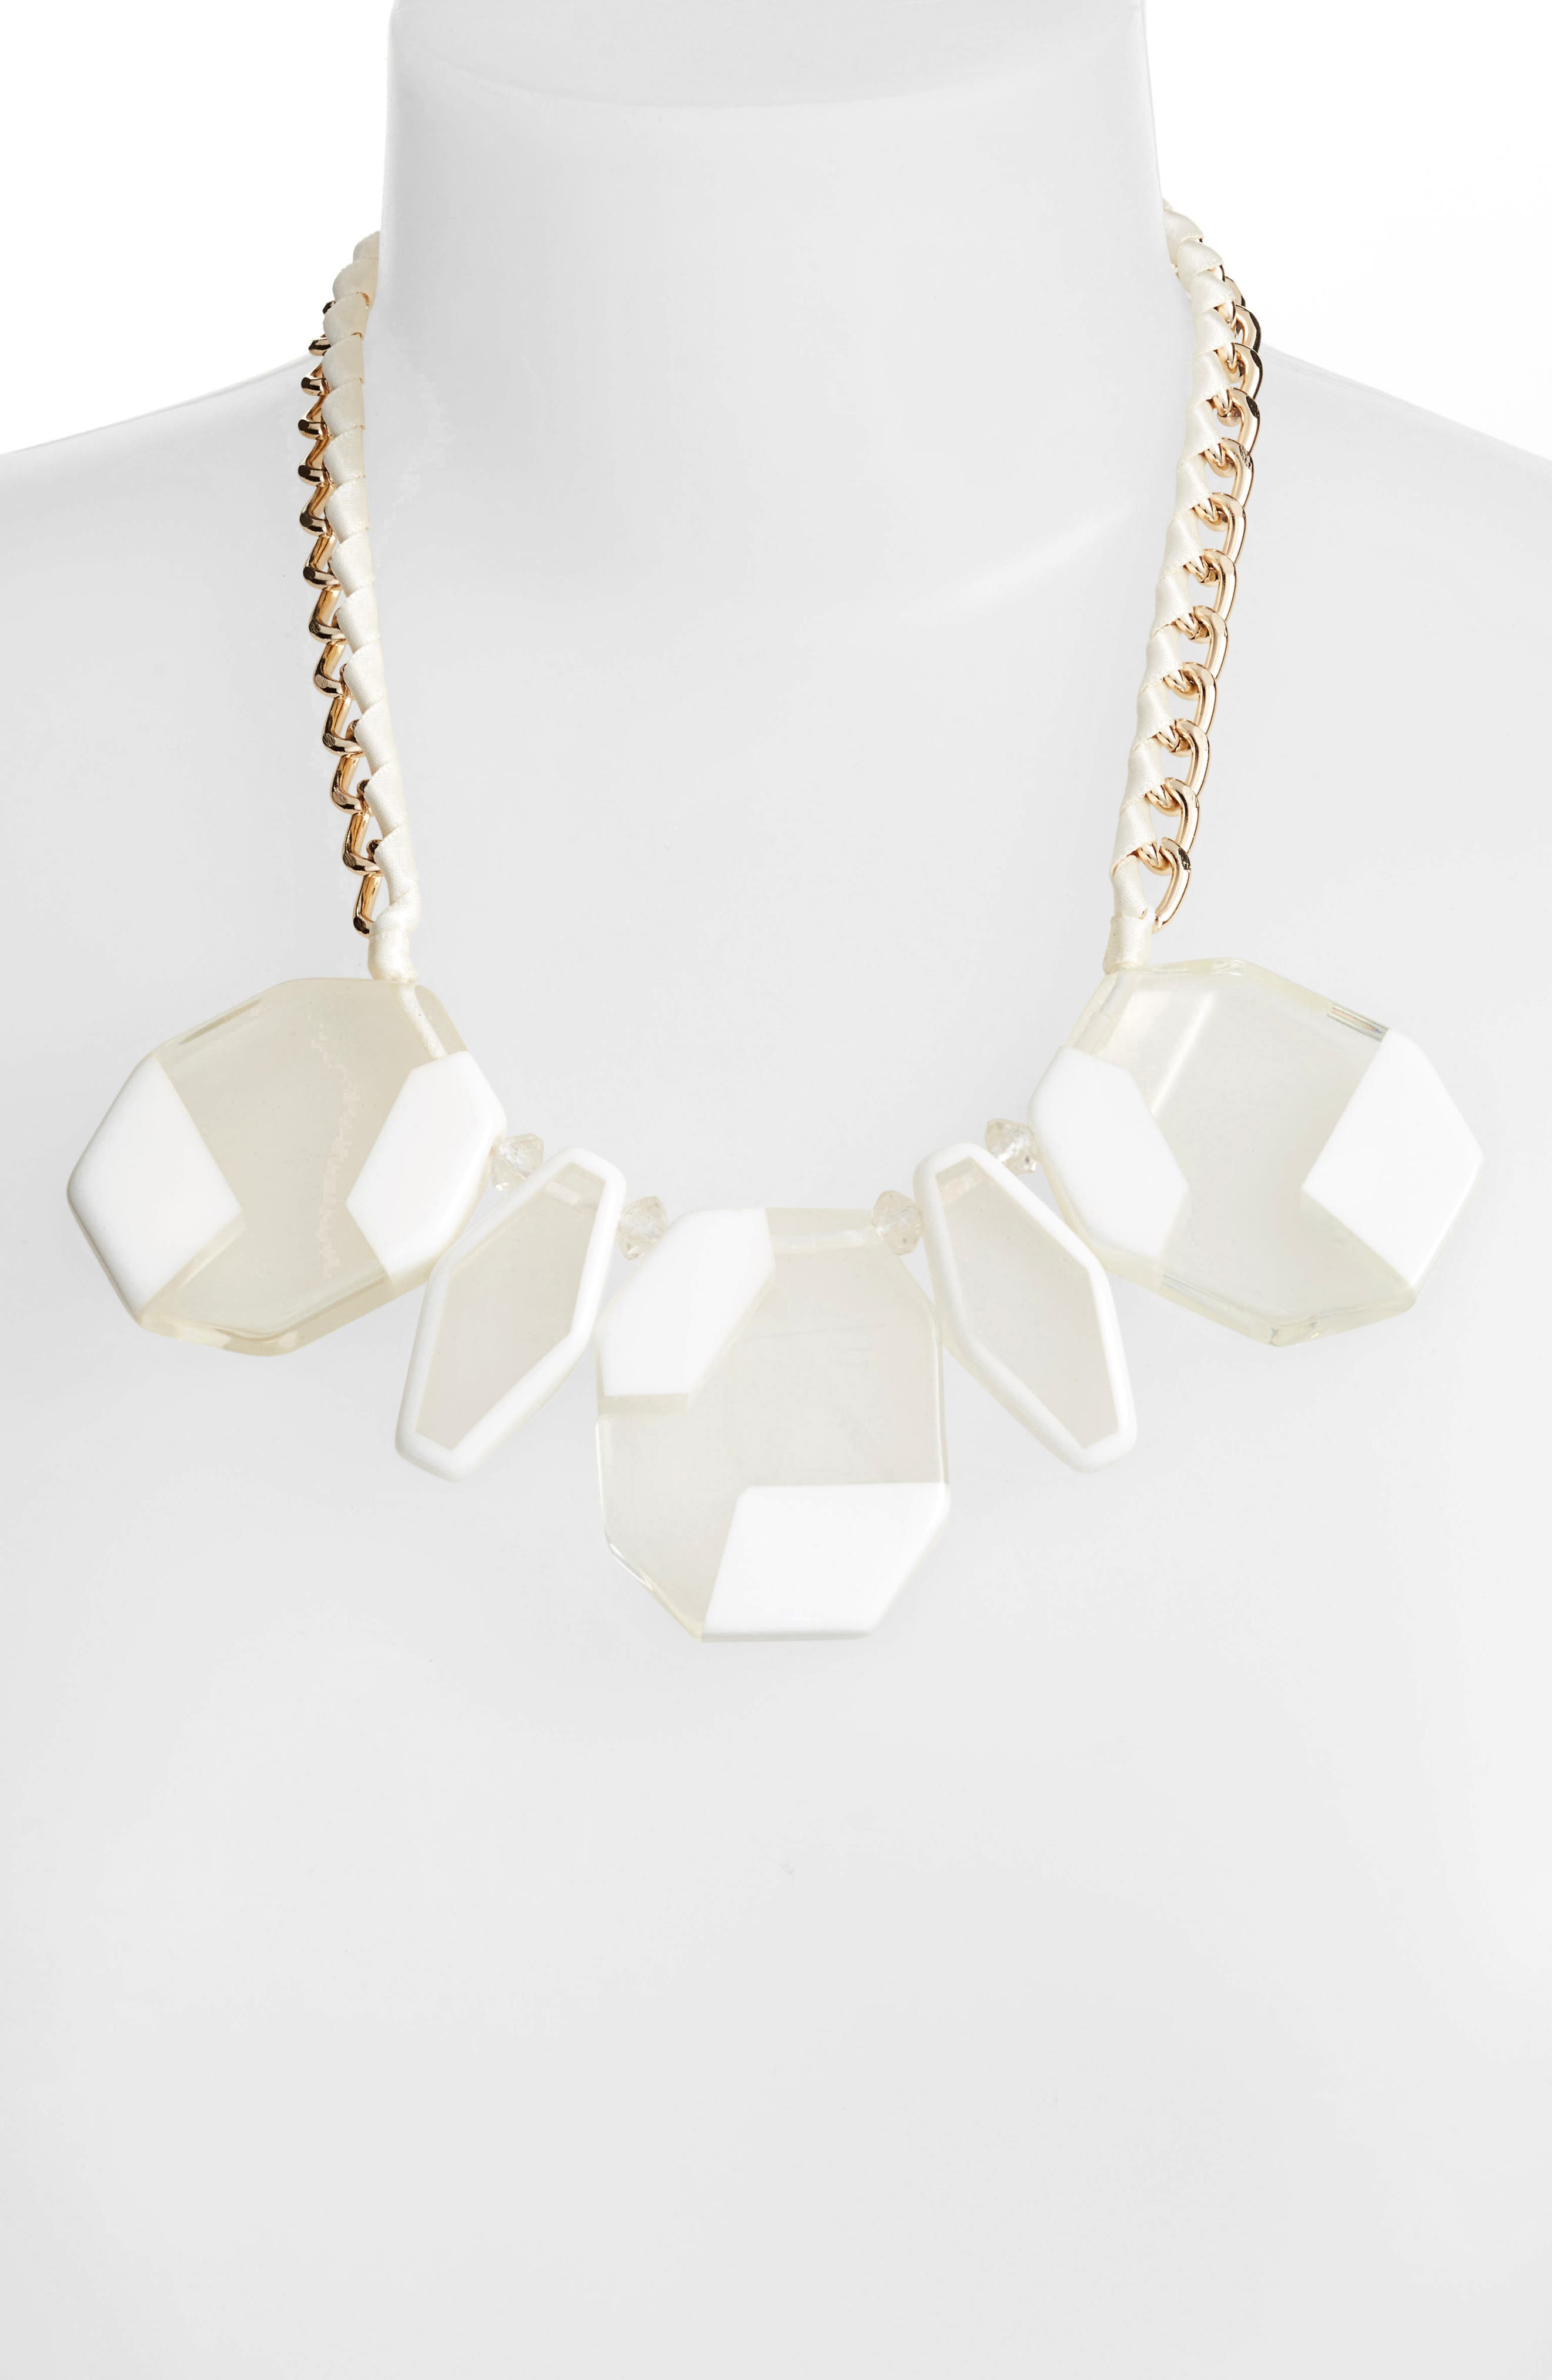 Resin Statement Necklace,                             Alternate thumbnail 2, color,                             White/ Clear